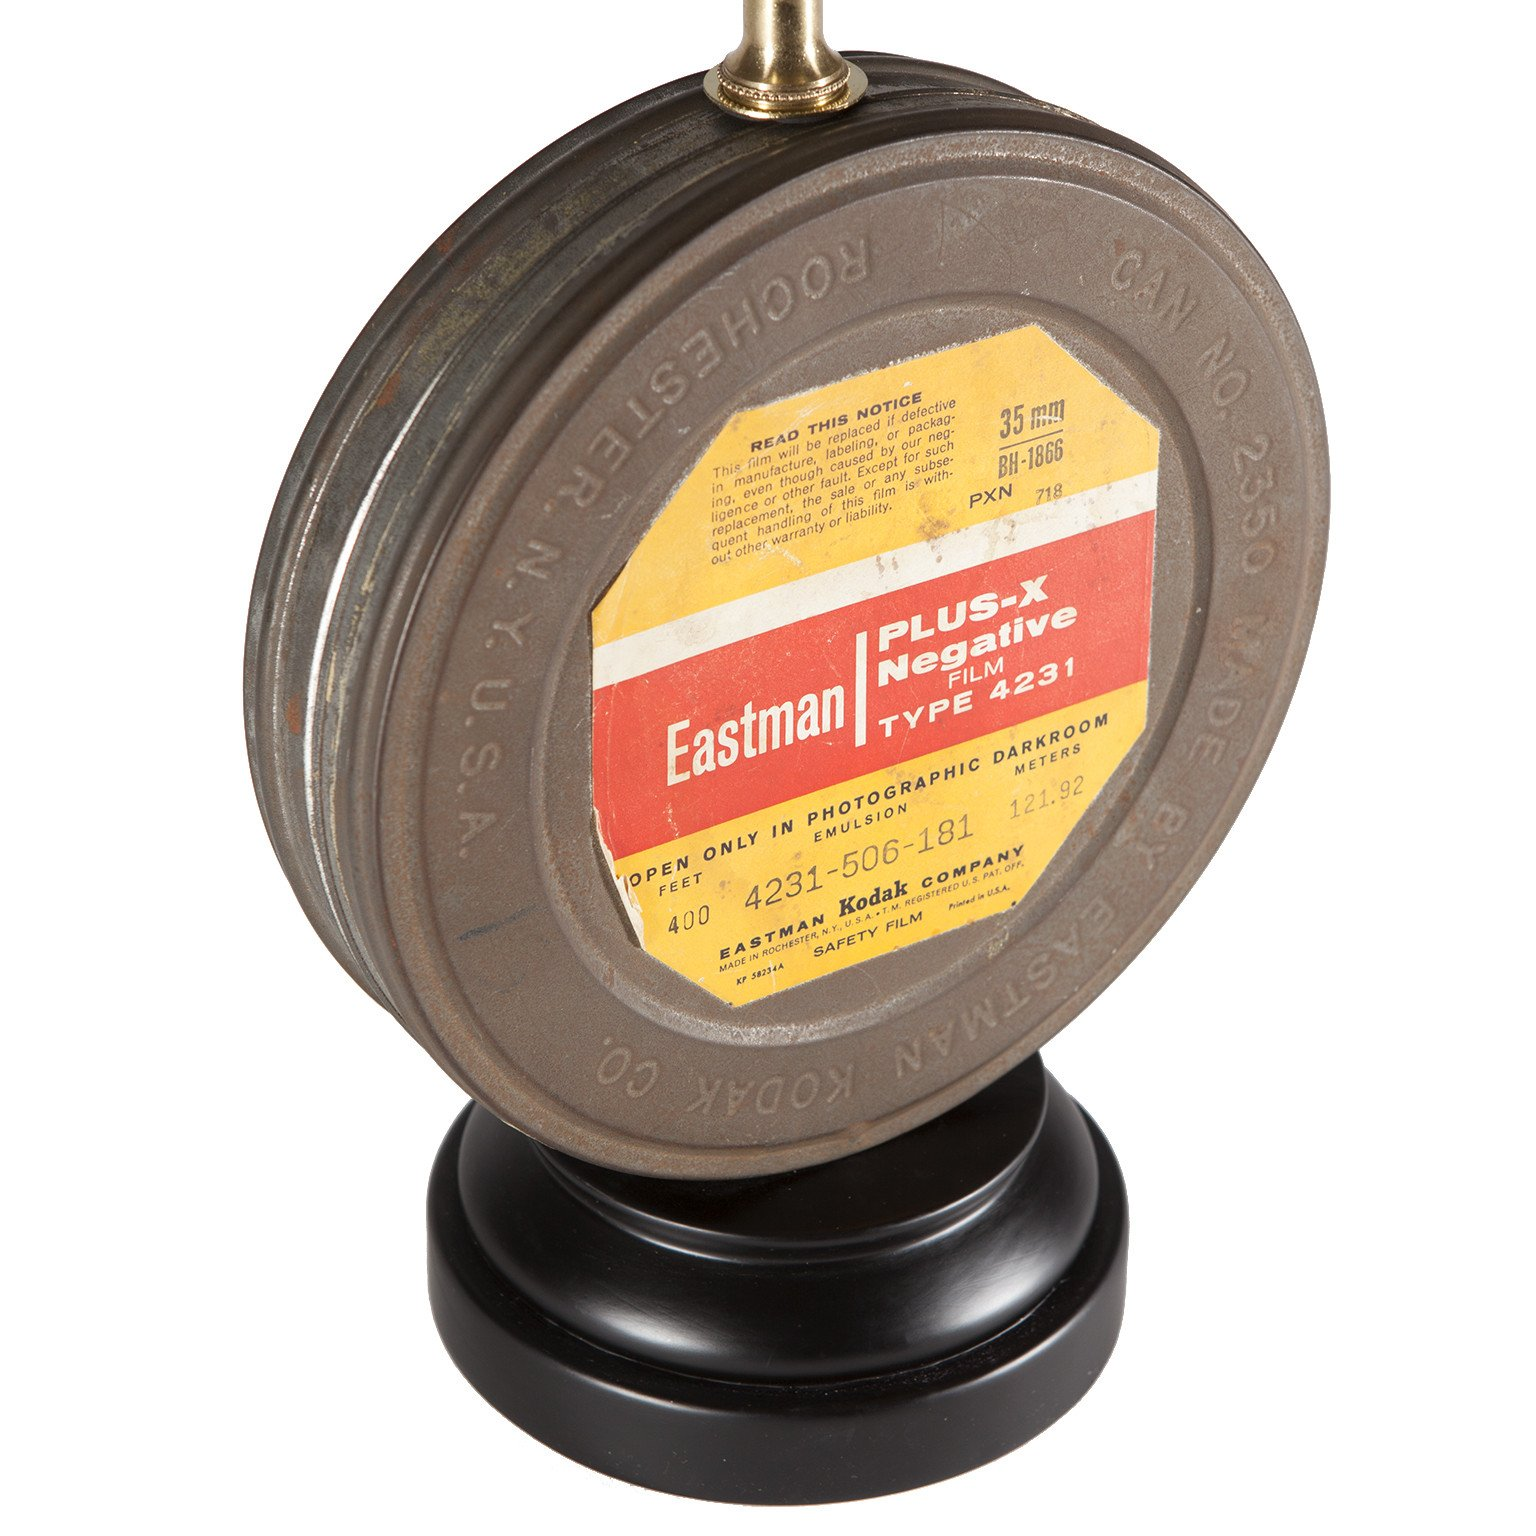 XX Vintage Eastman Film Canister Tin Lamp